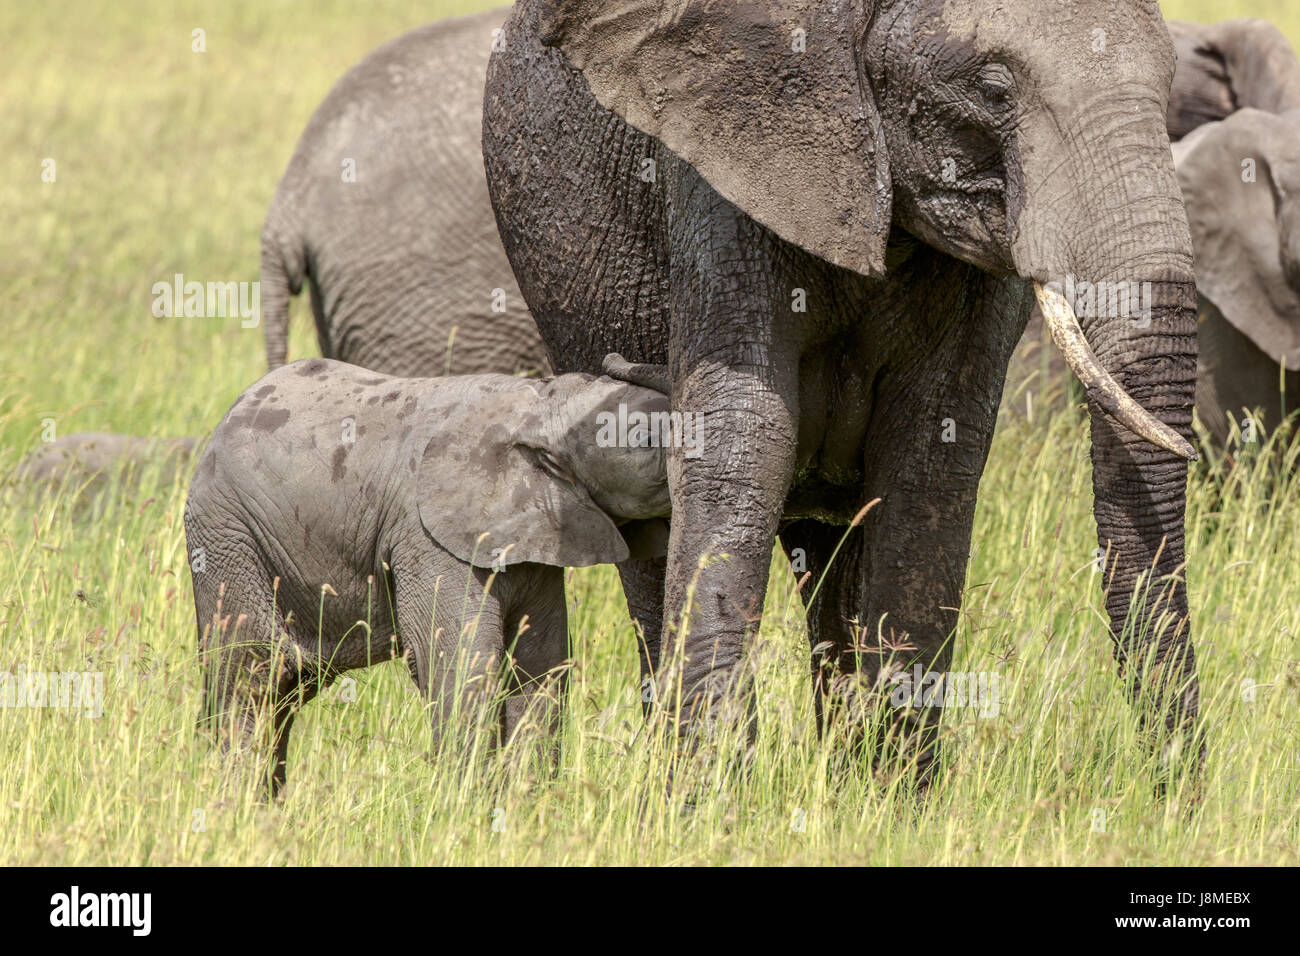 A tiny weeks old African Elephant calf feeds from its mother Stock Photo